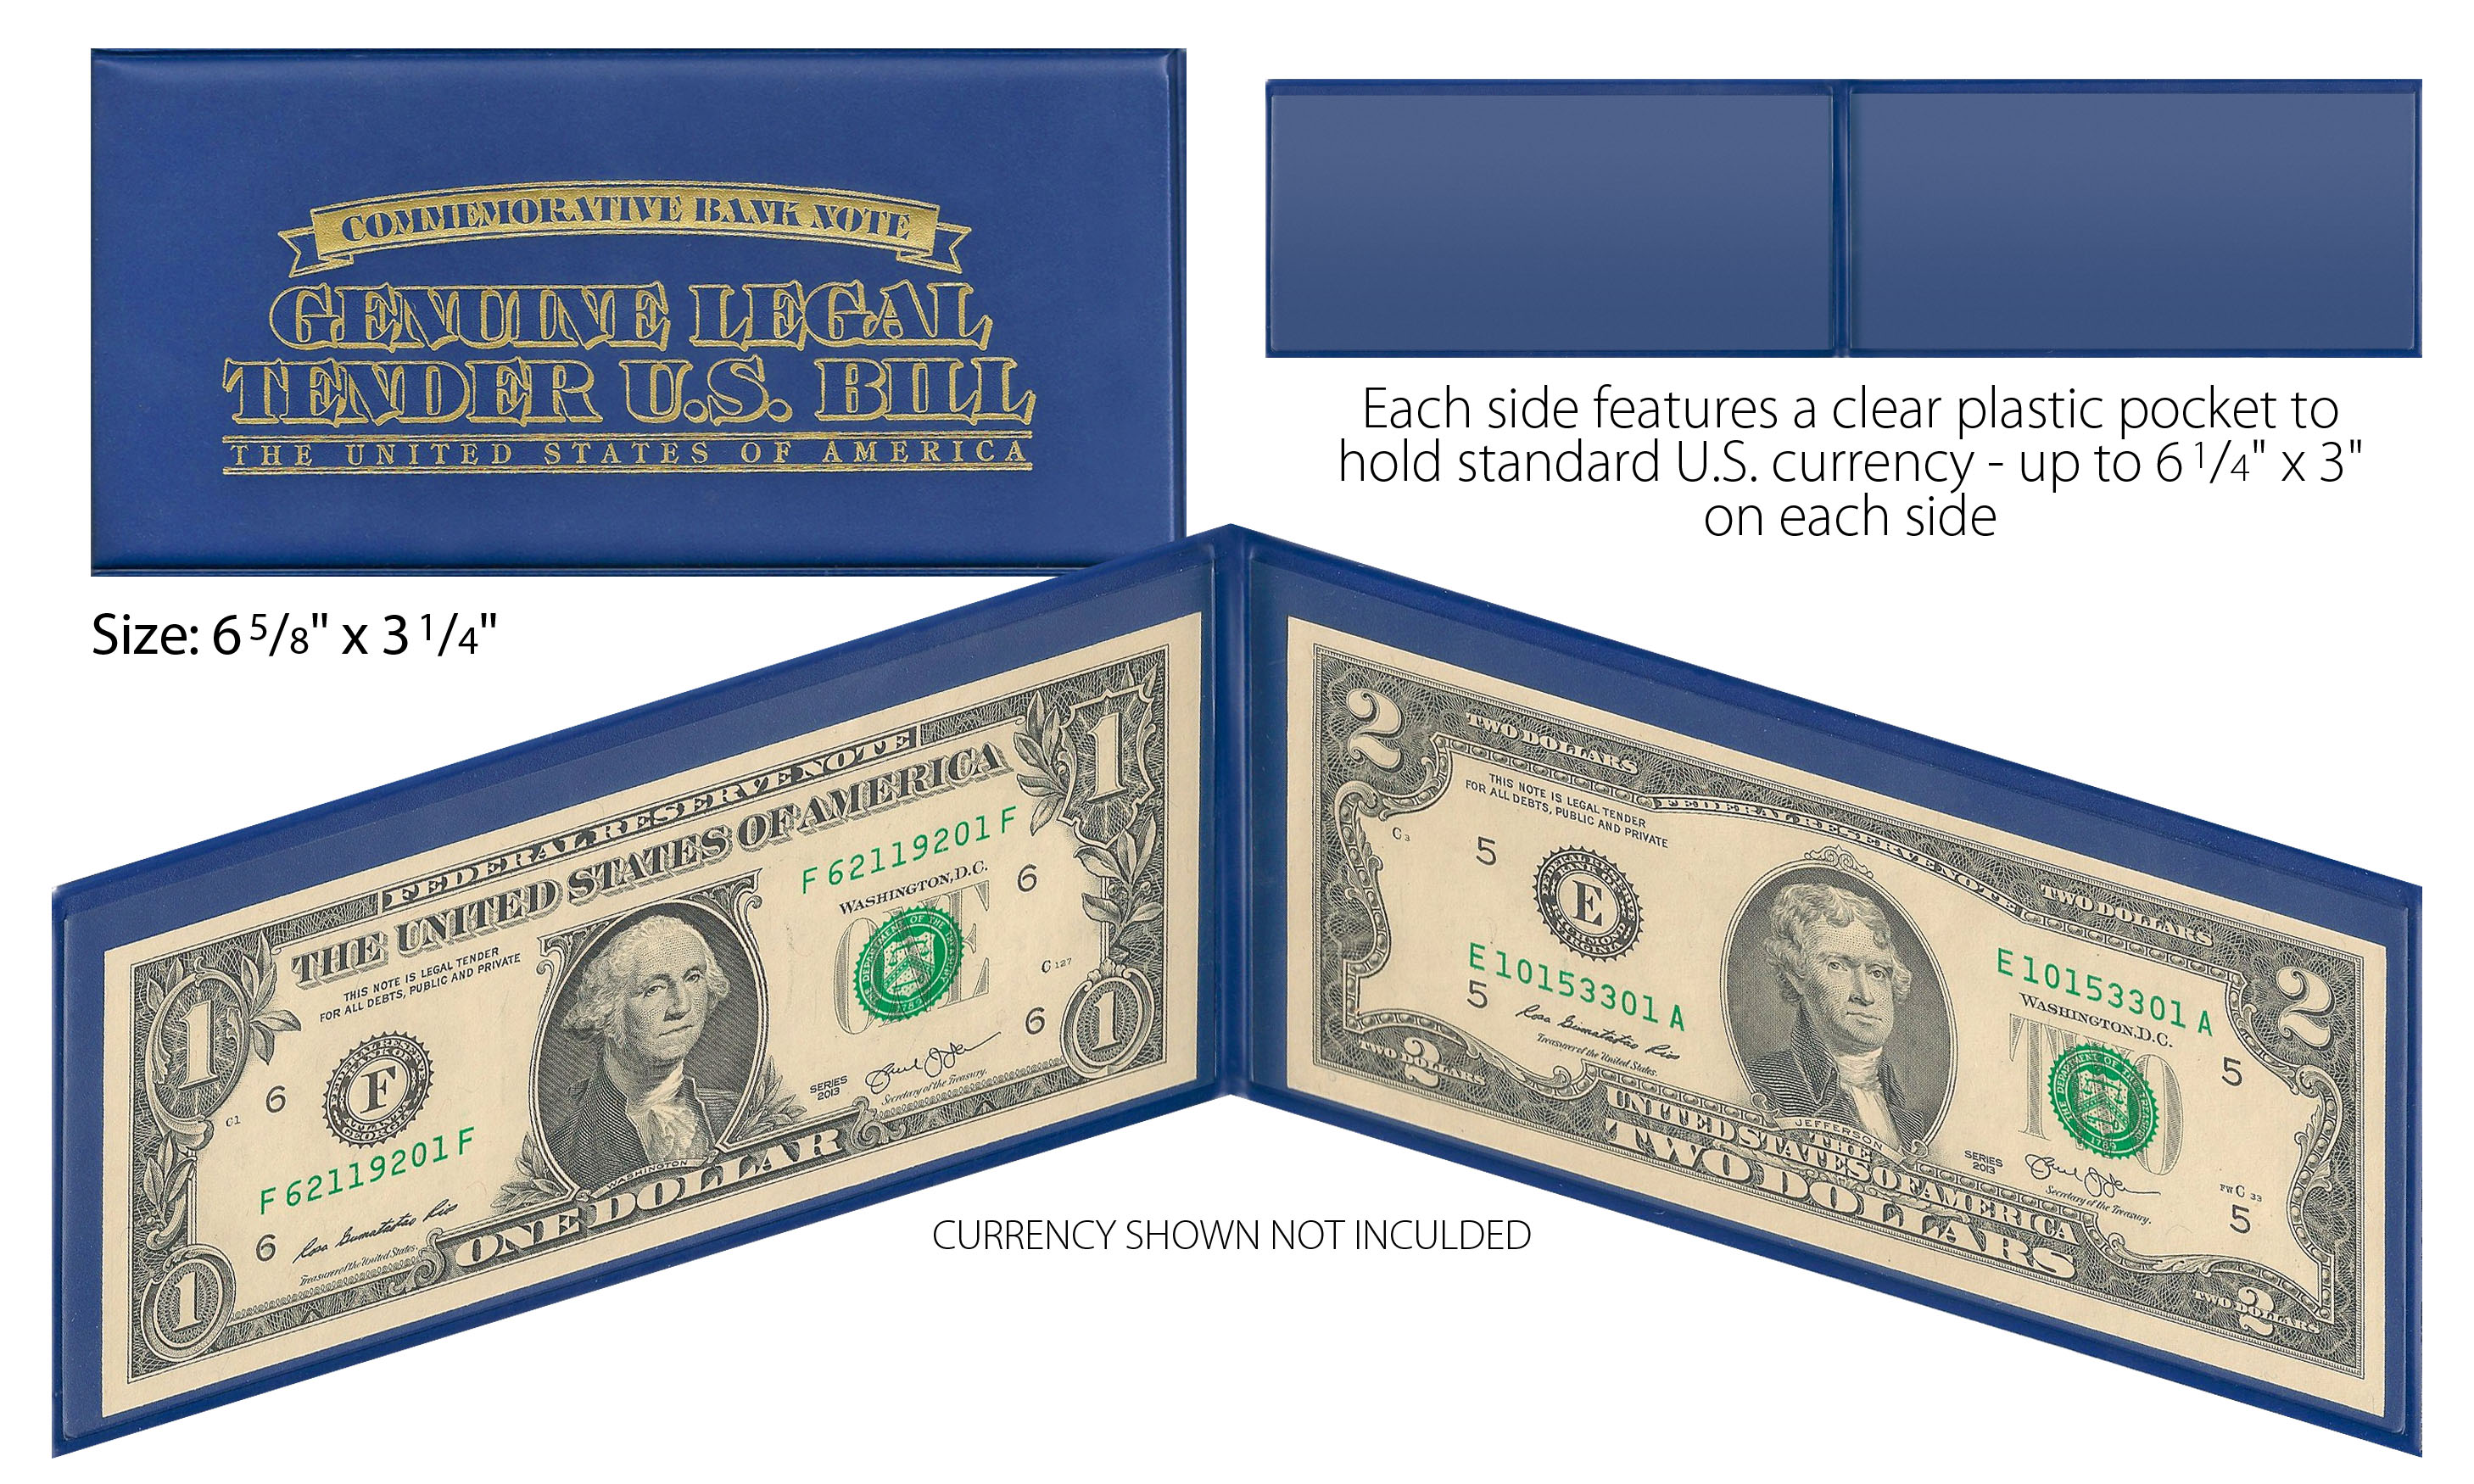 BLUE Premium Display Protection Folio for CURRENCY QTY 10 PAPER MONEY BILL